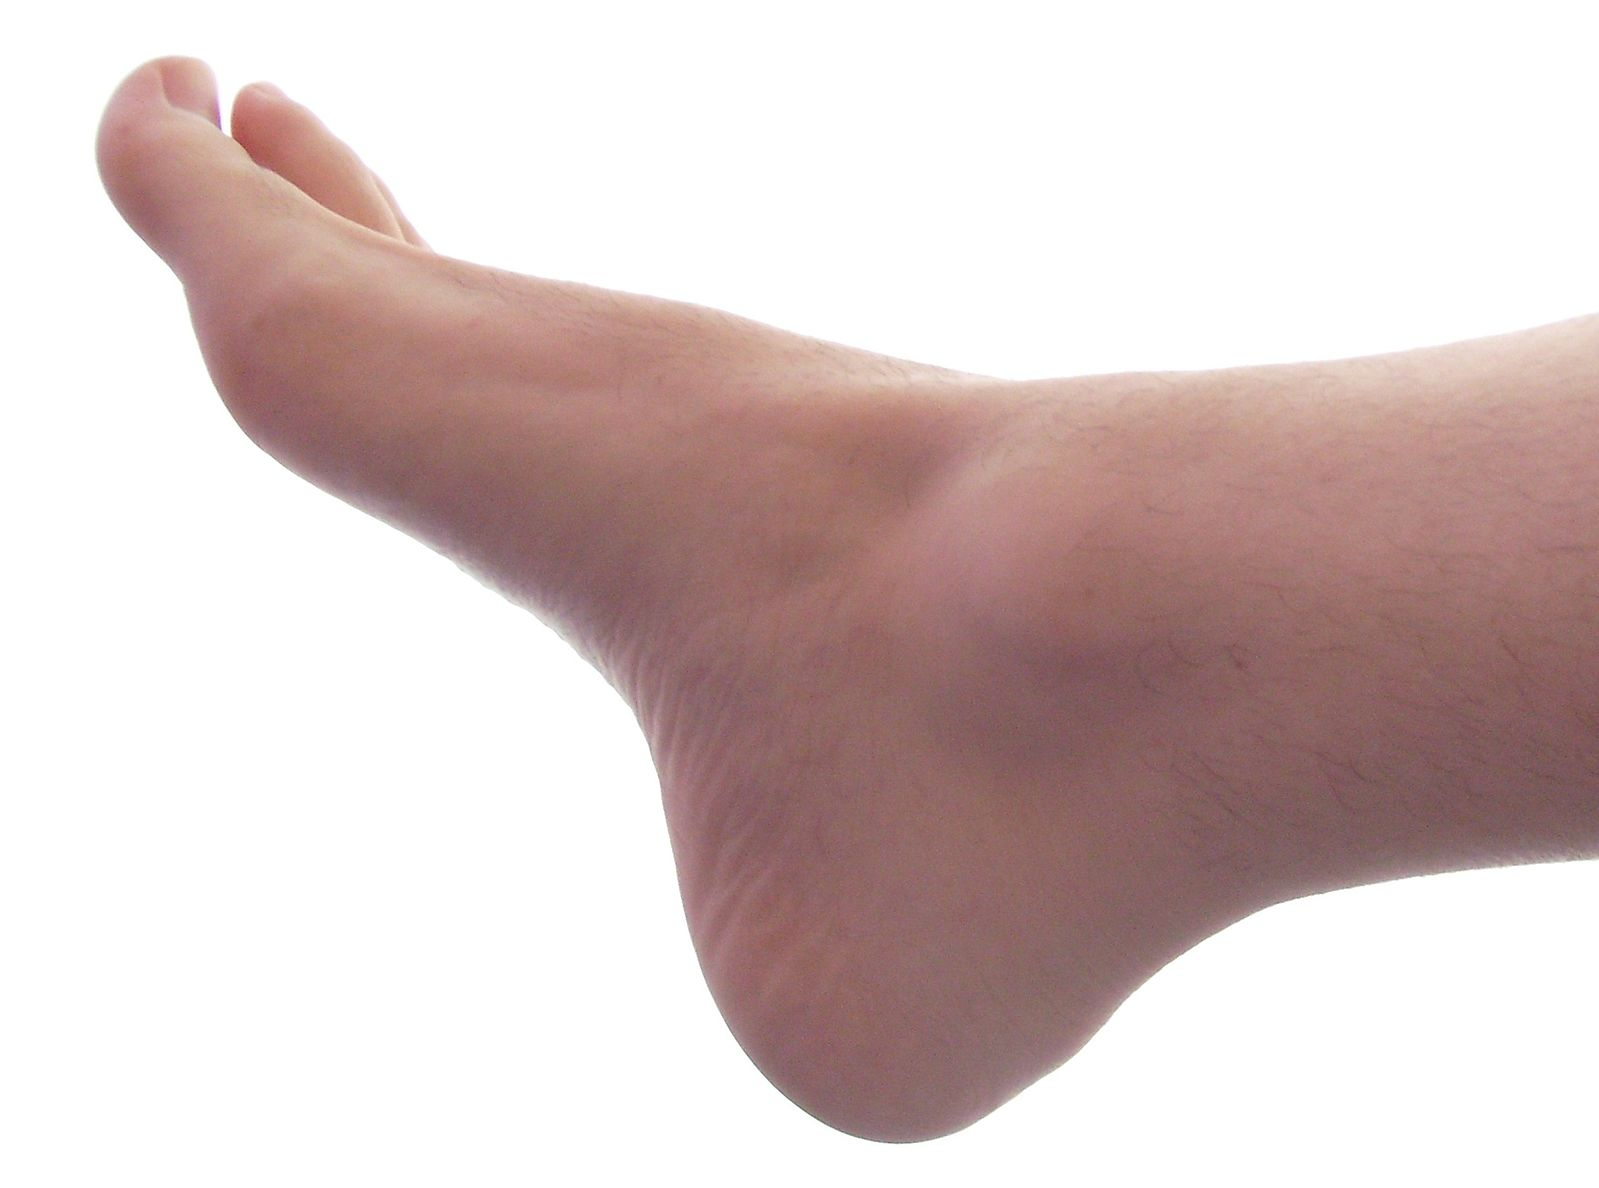 https://upload.wikimedia.org/wikipedia/commons/thumb/a/ae/Male_Right_Foot_1.jpg/1599px-Male_Right_Foot_1.jpg